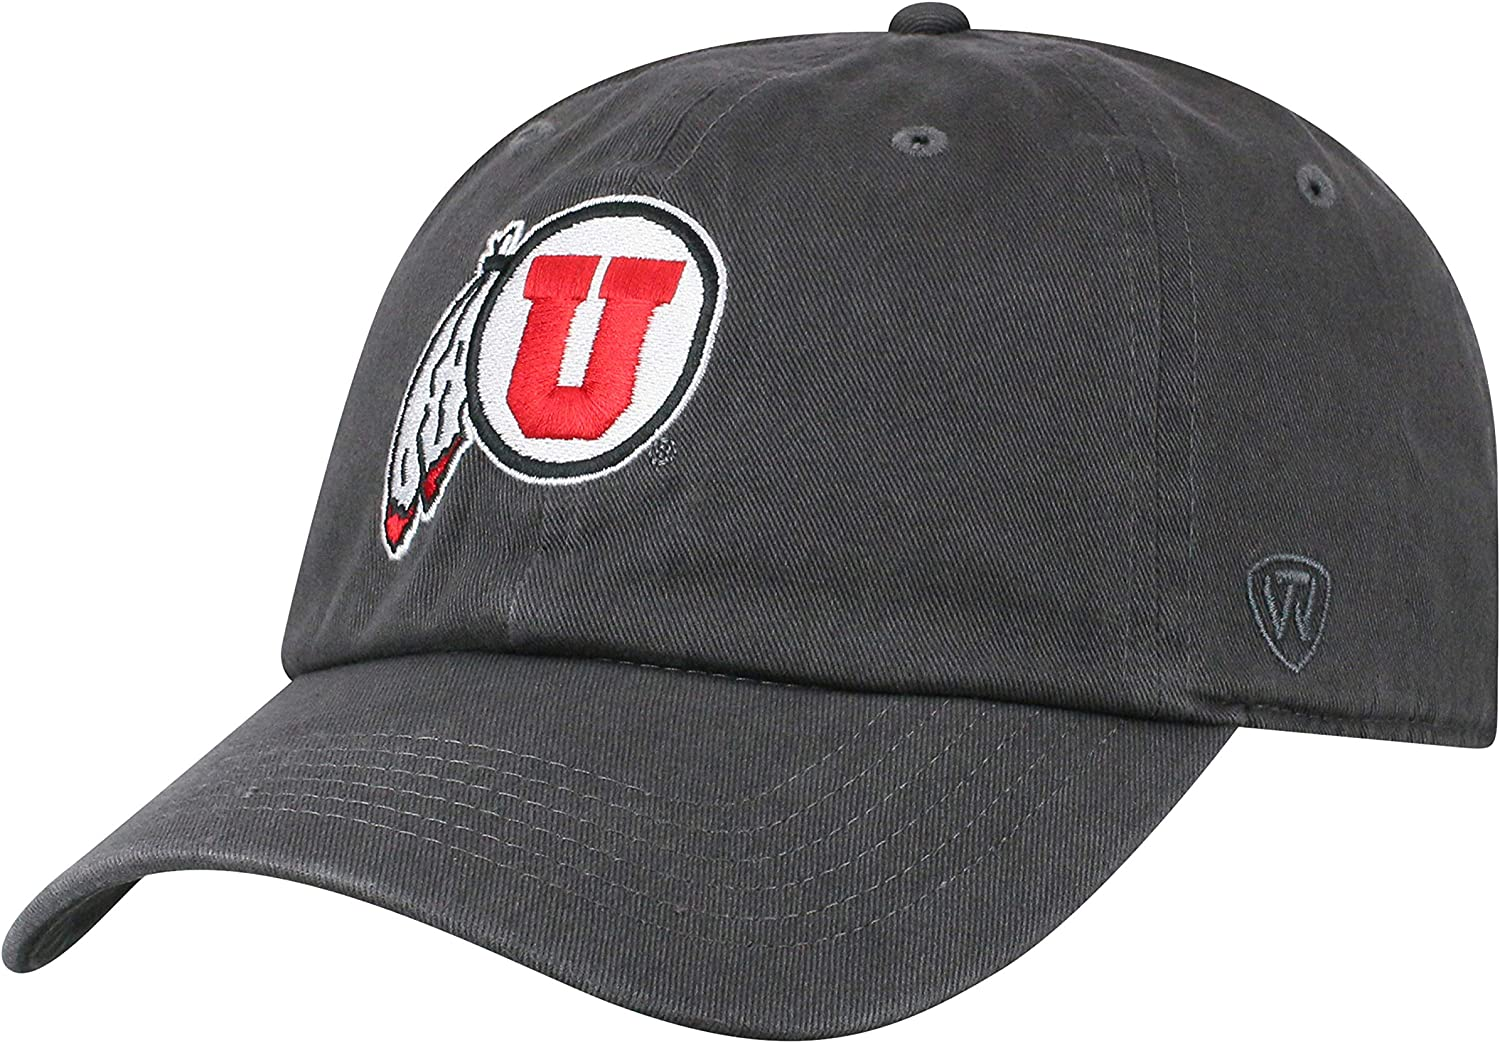 Top of the World Men's Adjustable Relaxed Fit Charcoal Icon Hat